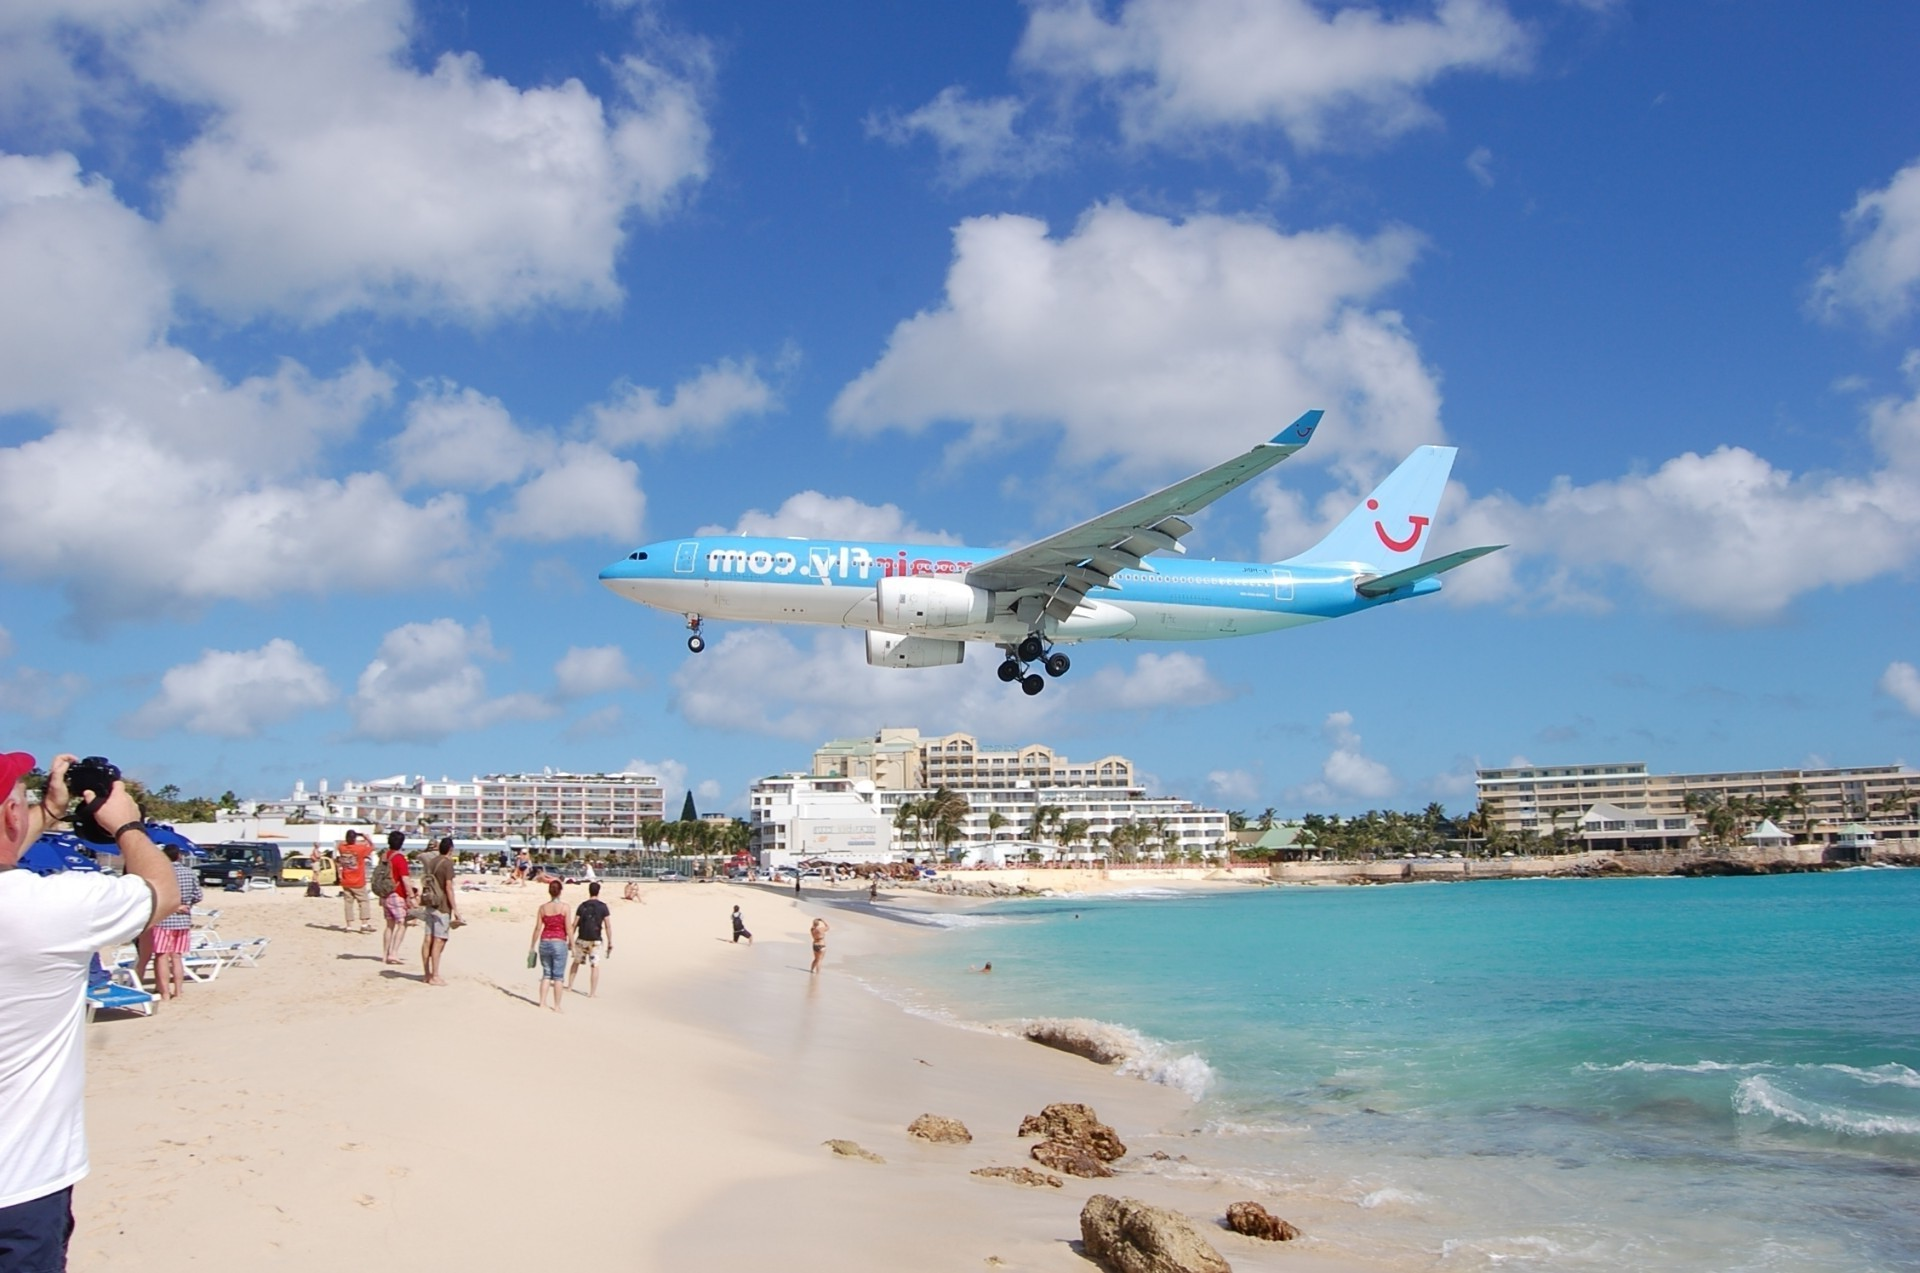 Emergency landing of plane on a crowded beach